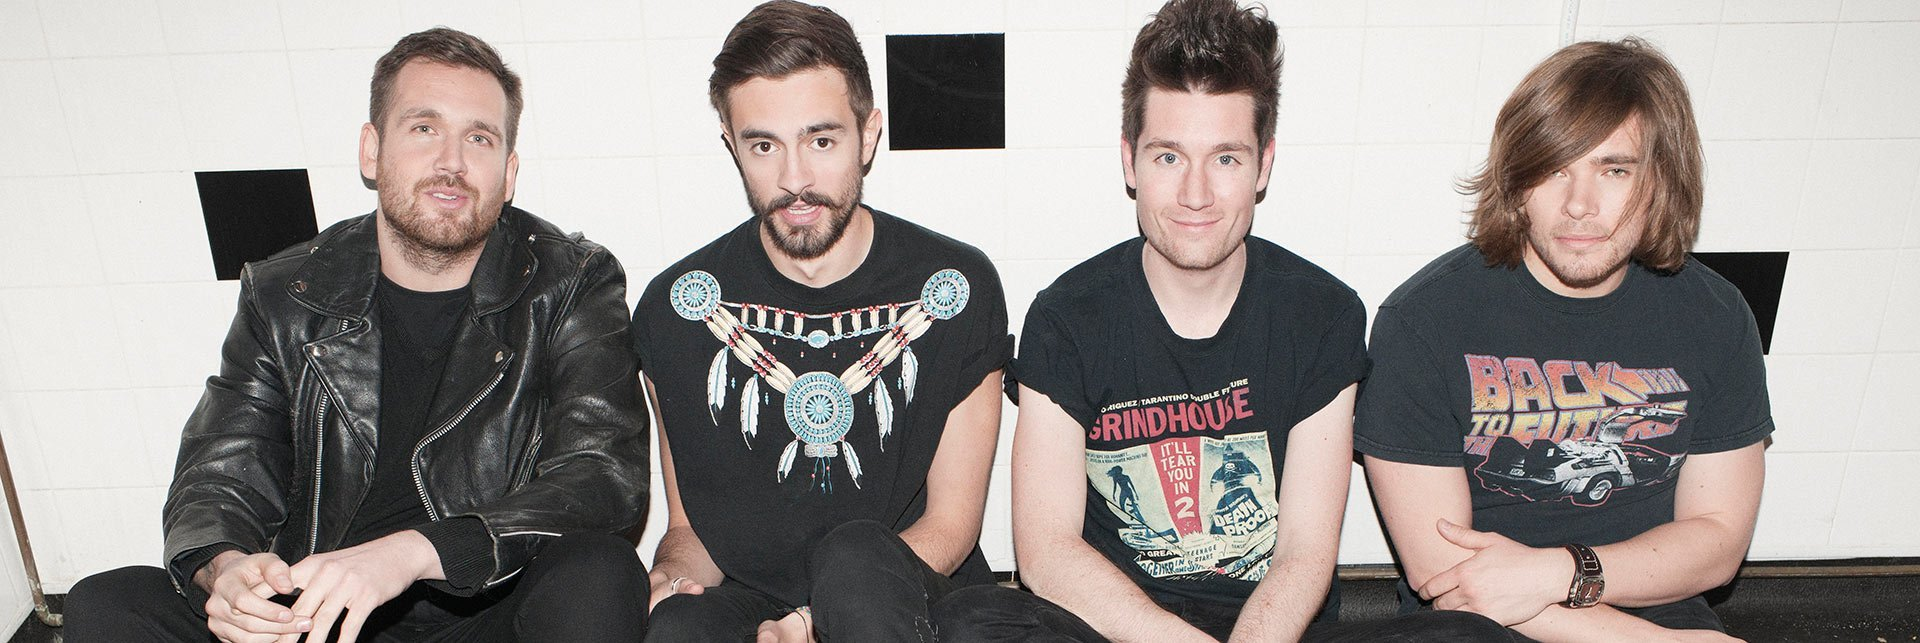 Welcome The Brand New Year of 2015 with Bastille!